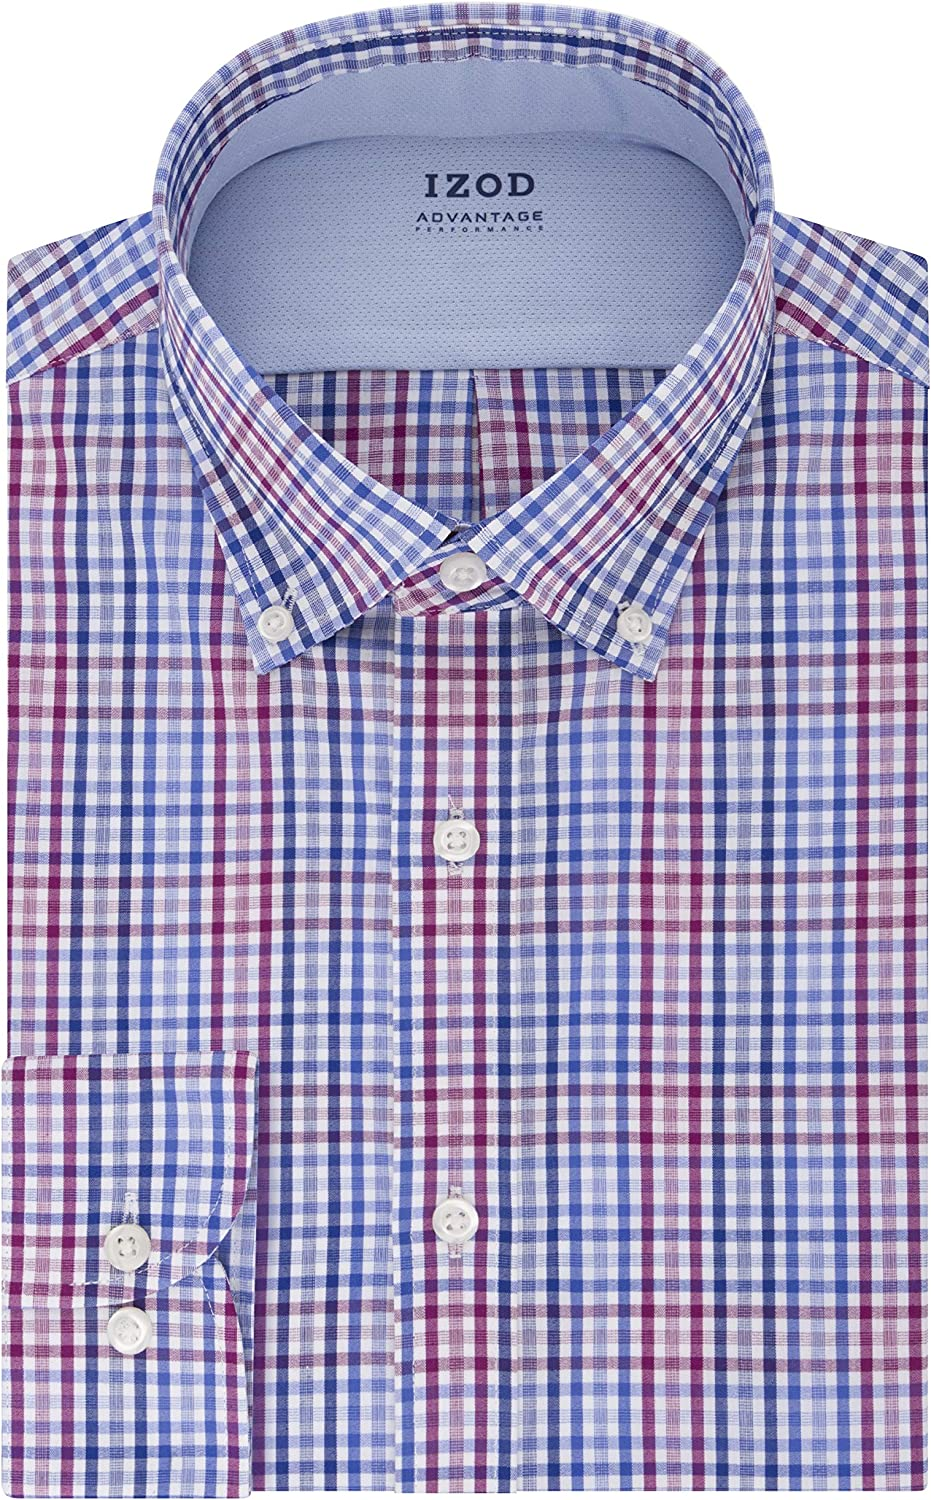 IZOD Men's TALL FIT Dress Shirt Stretch Cool FX Cooling Collar Check (Big and Tall)